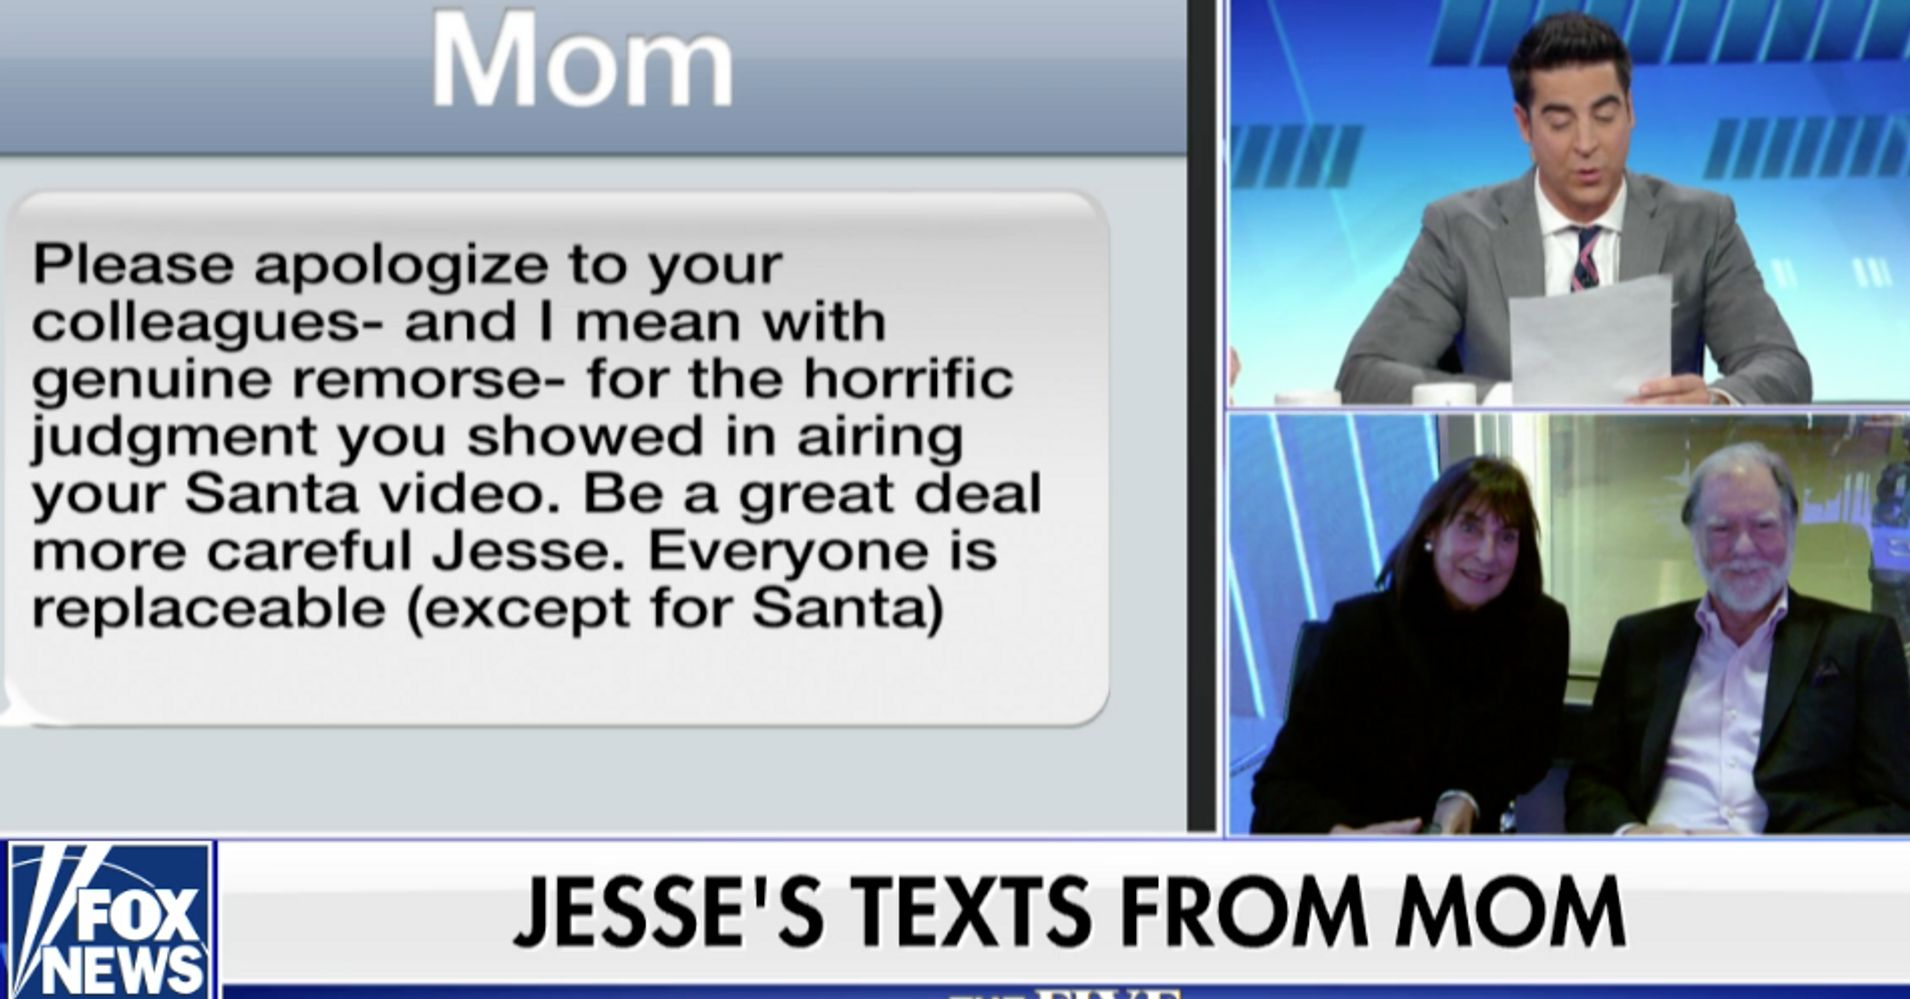 Jesse Watters' Mother Is 'Distraught' About Her Son's Views